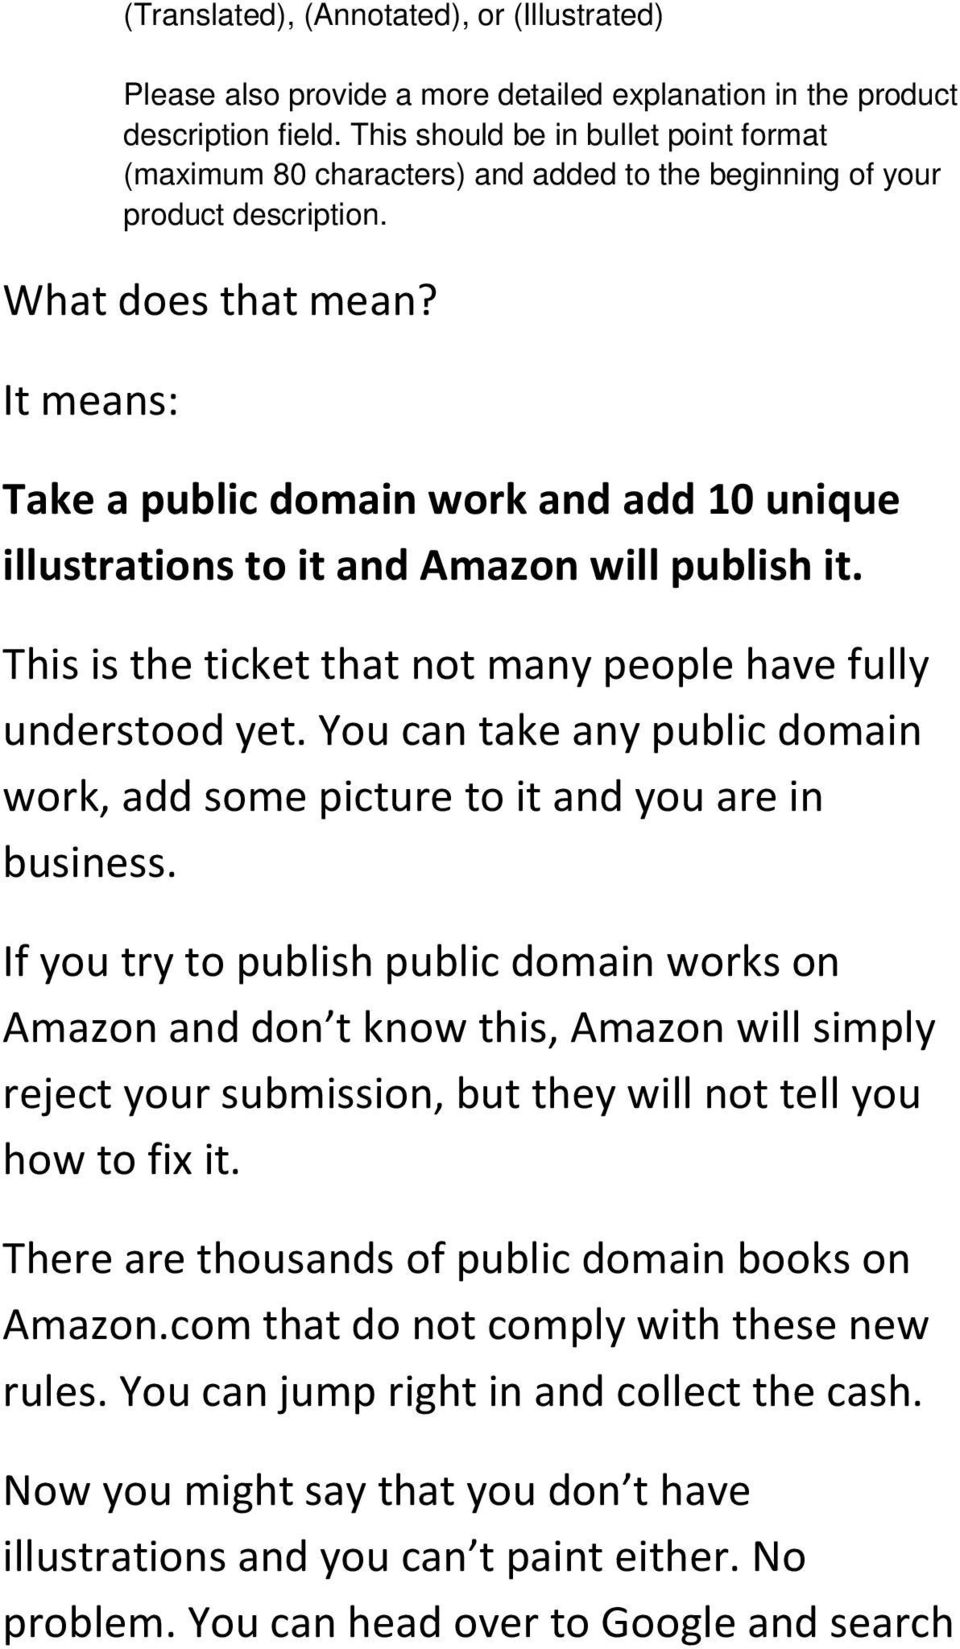 It means: Take a public domain work and add 10 unique illustrations to it and Amazon will publish it. This is the ticket that not many people have fully understood yet.